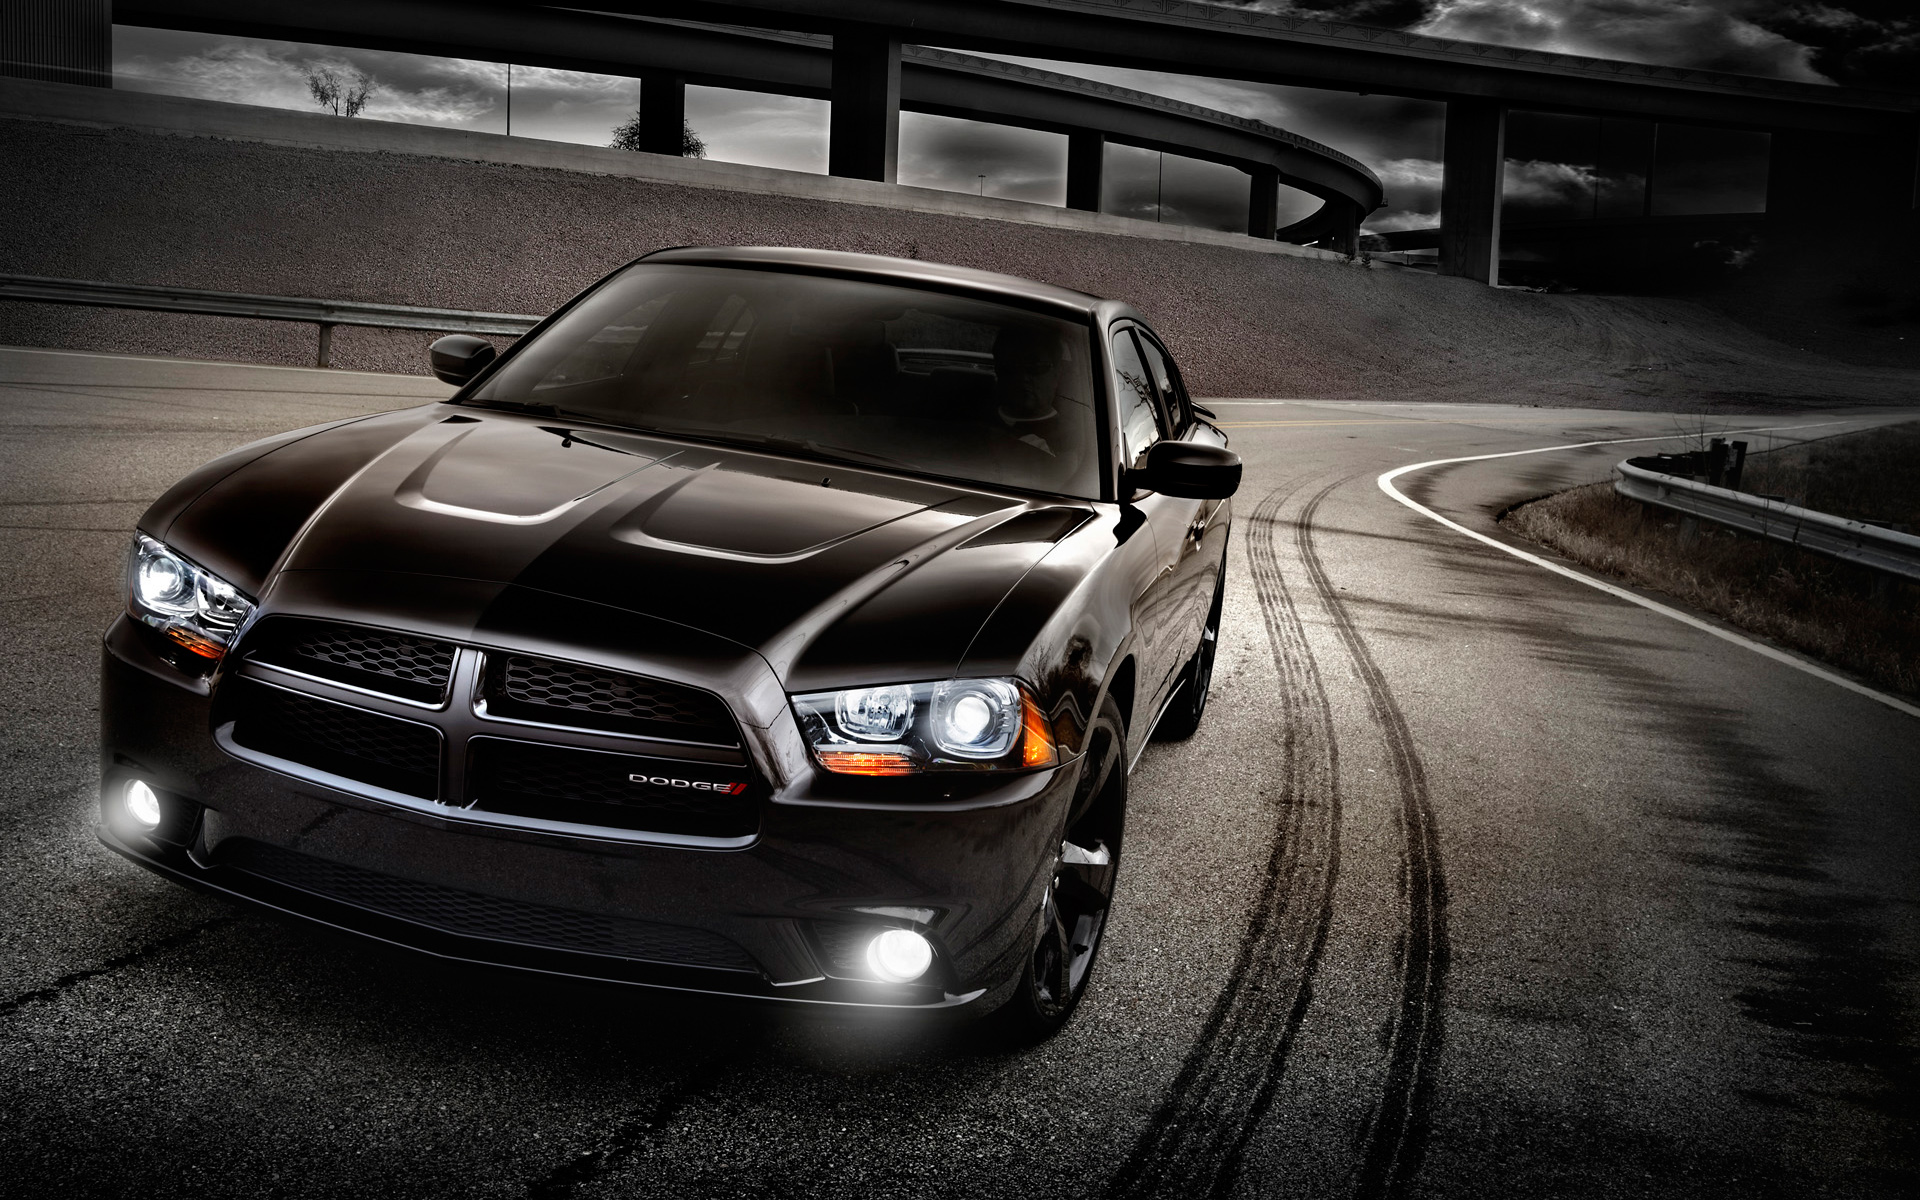 2012 dodge charger 2 3 wallpaper hd car wallpapers id 2581. Black Bedroom Furniture Sets. Home Design Ideas